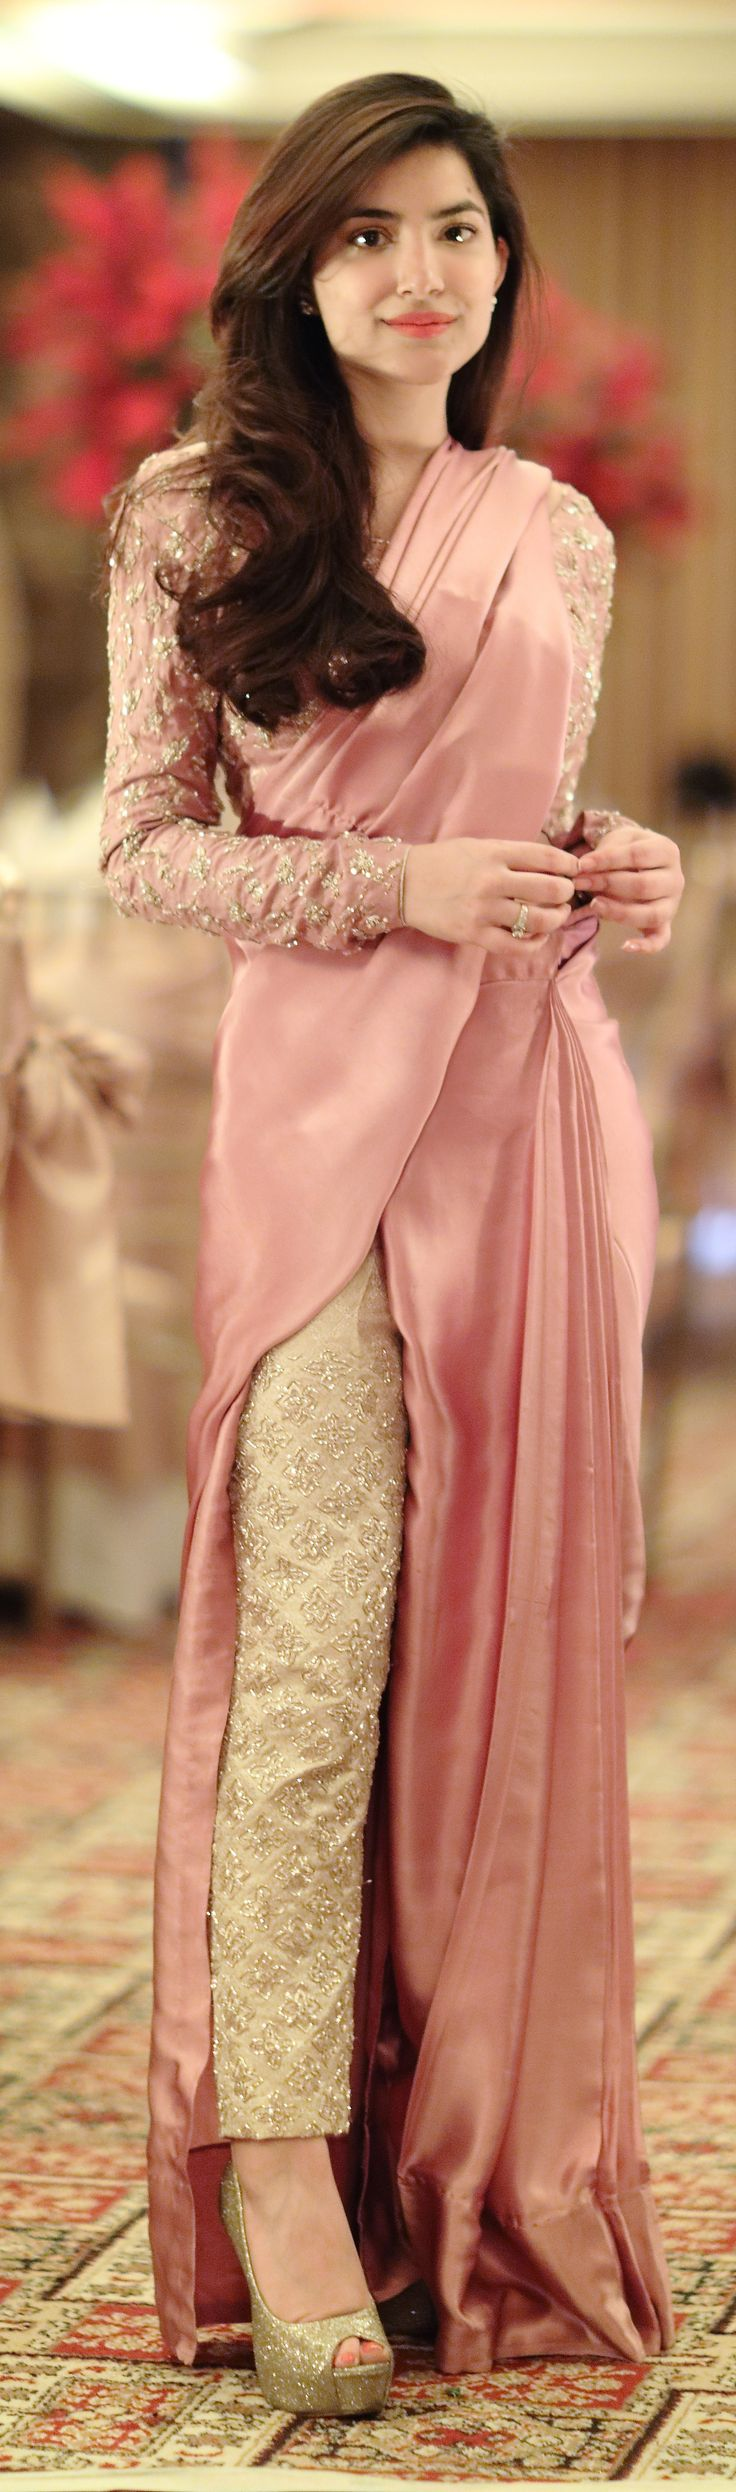 Stylish-in-a-sari-pant-from-her-own-label.jpg (1658×5615)